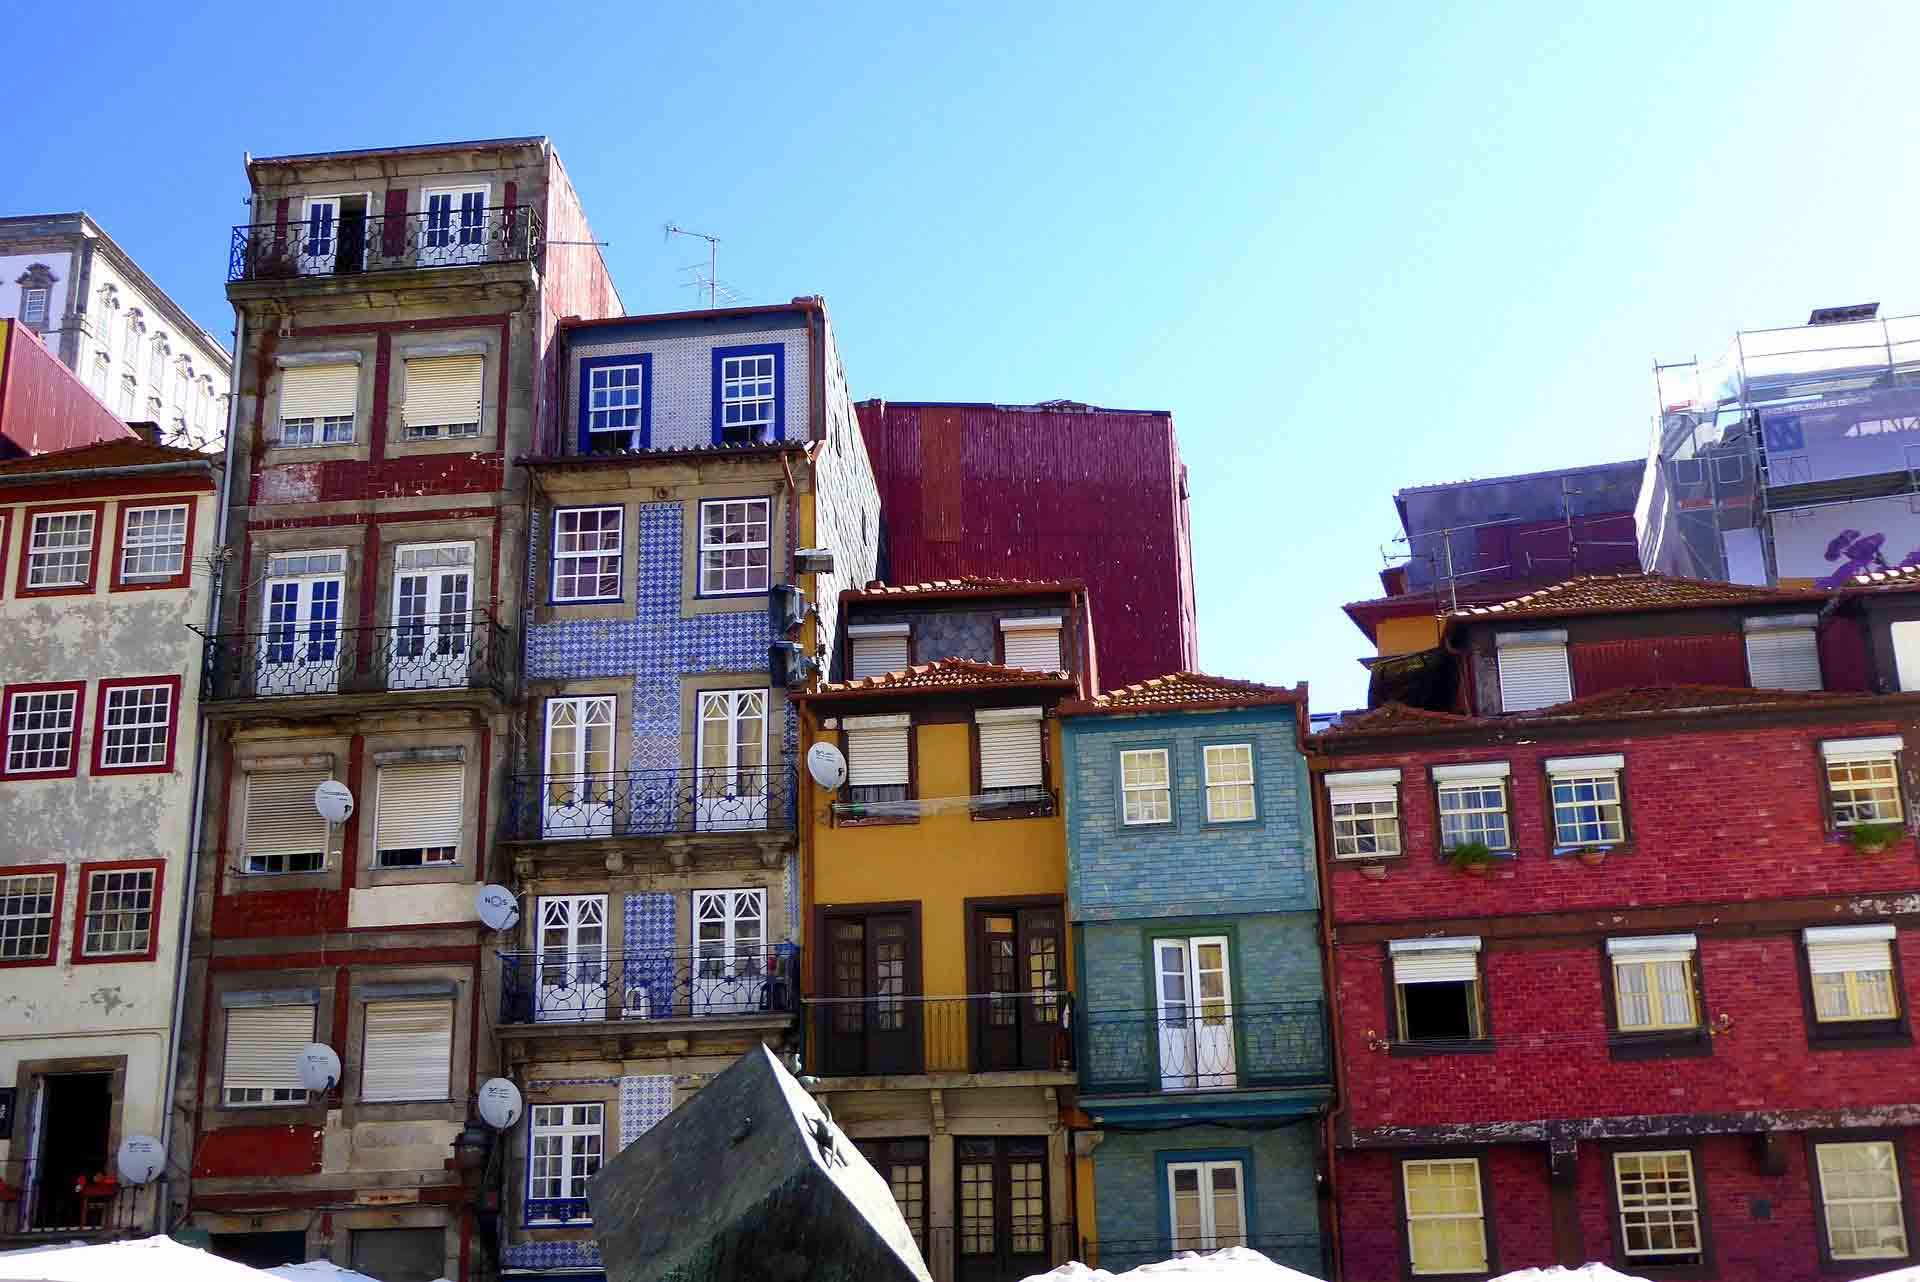 Colourful-buildings-in-Porto